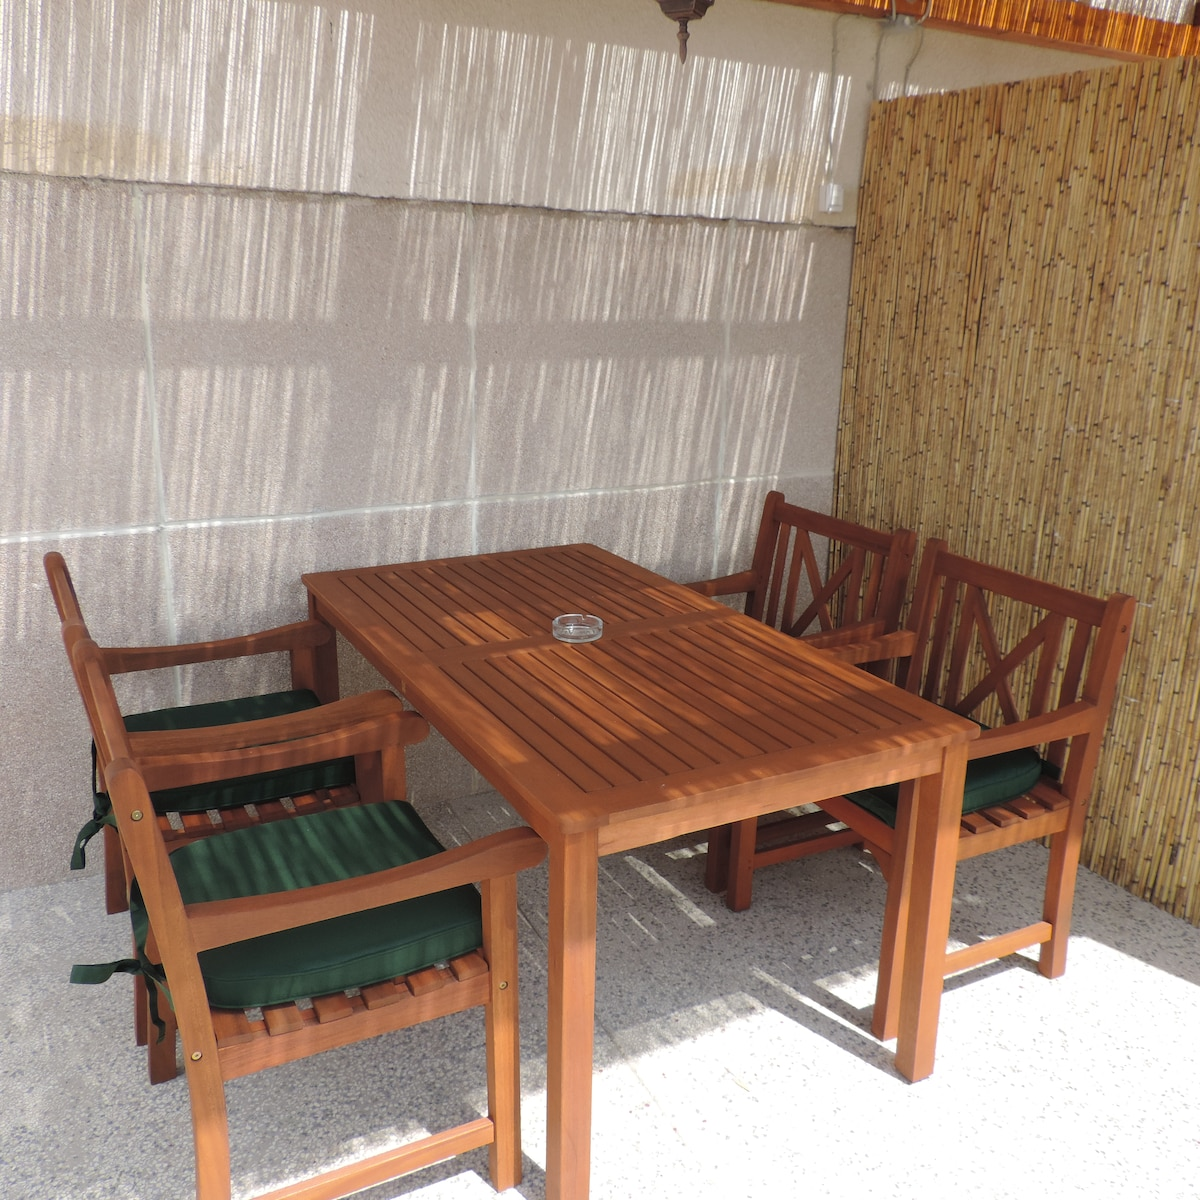 terrace with table and chairs